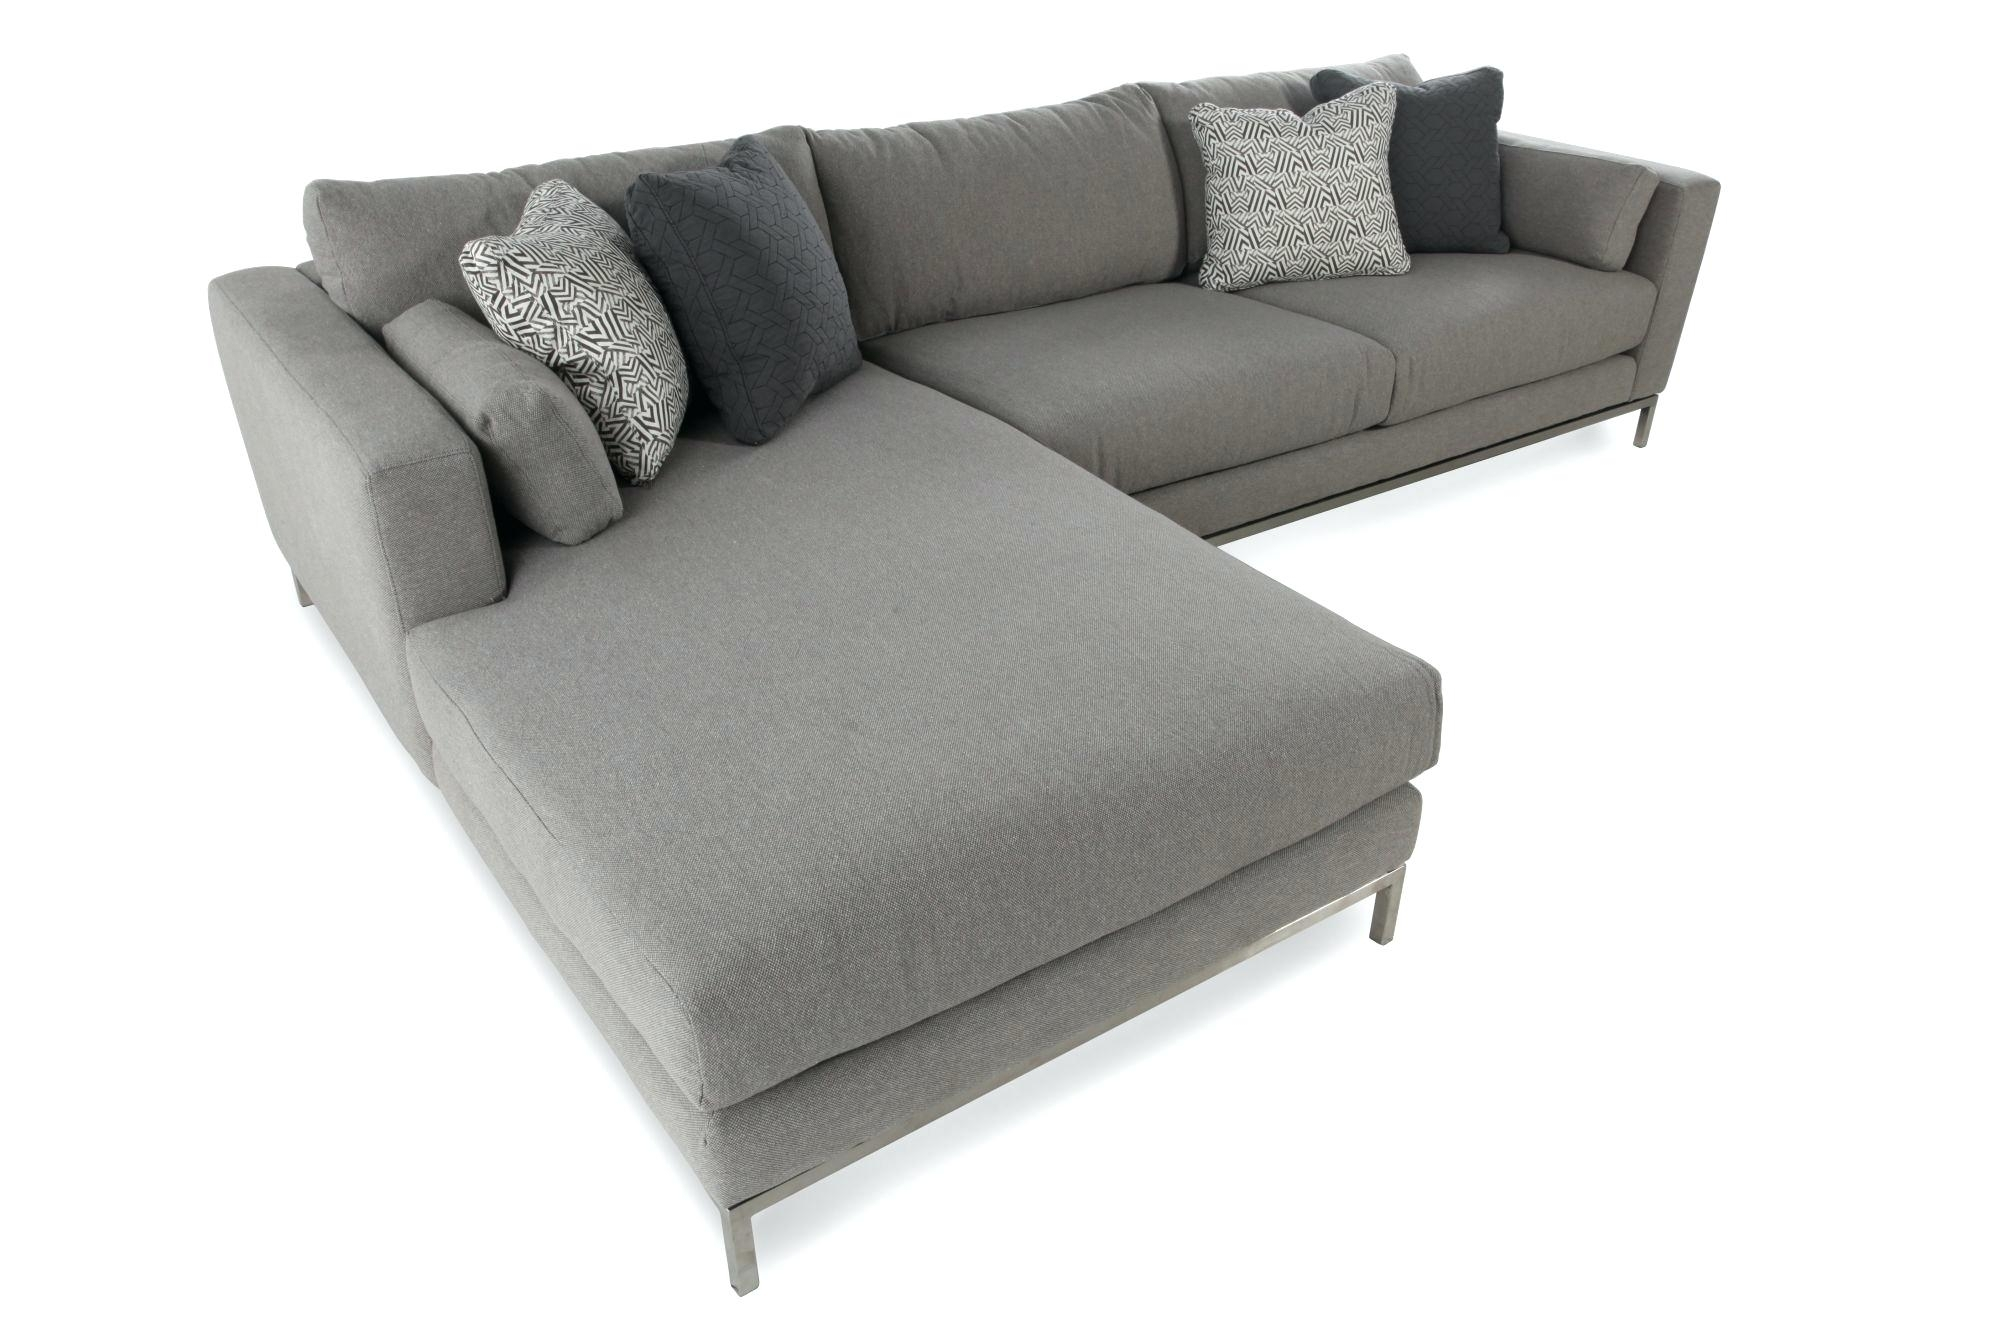 2 Piece Sectional Sofa Canada | Baci Living Room For Cosmos Grey 2 Piece Sectionals With Raf Chaise (Image 1 of 25)